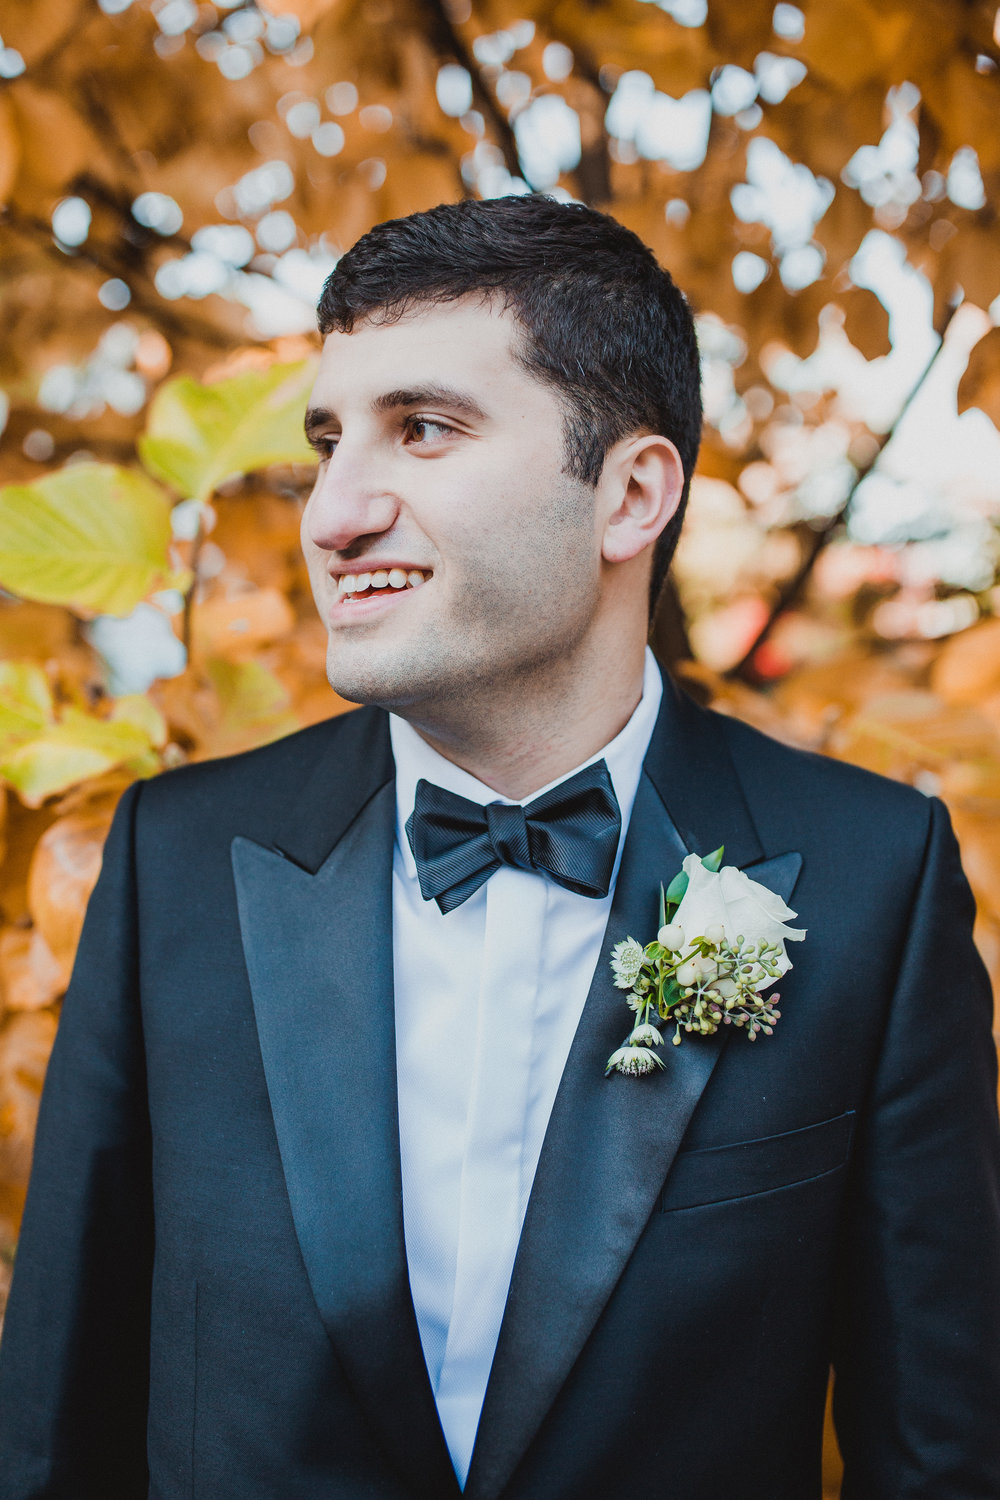 11.4.18 Liz & Dan Wedding-271.jpg